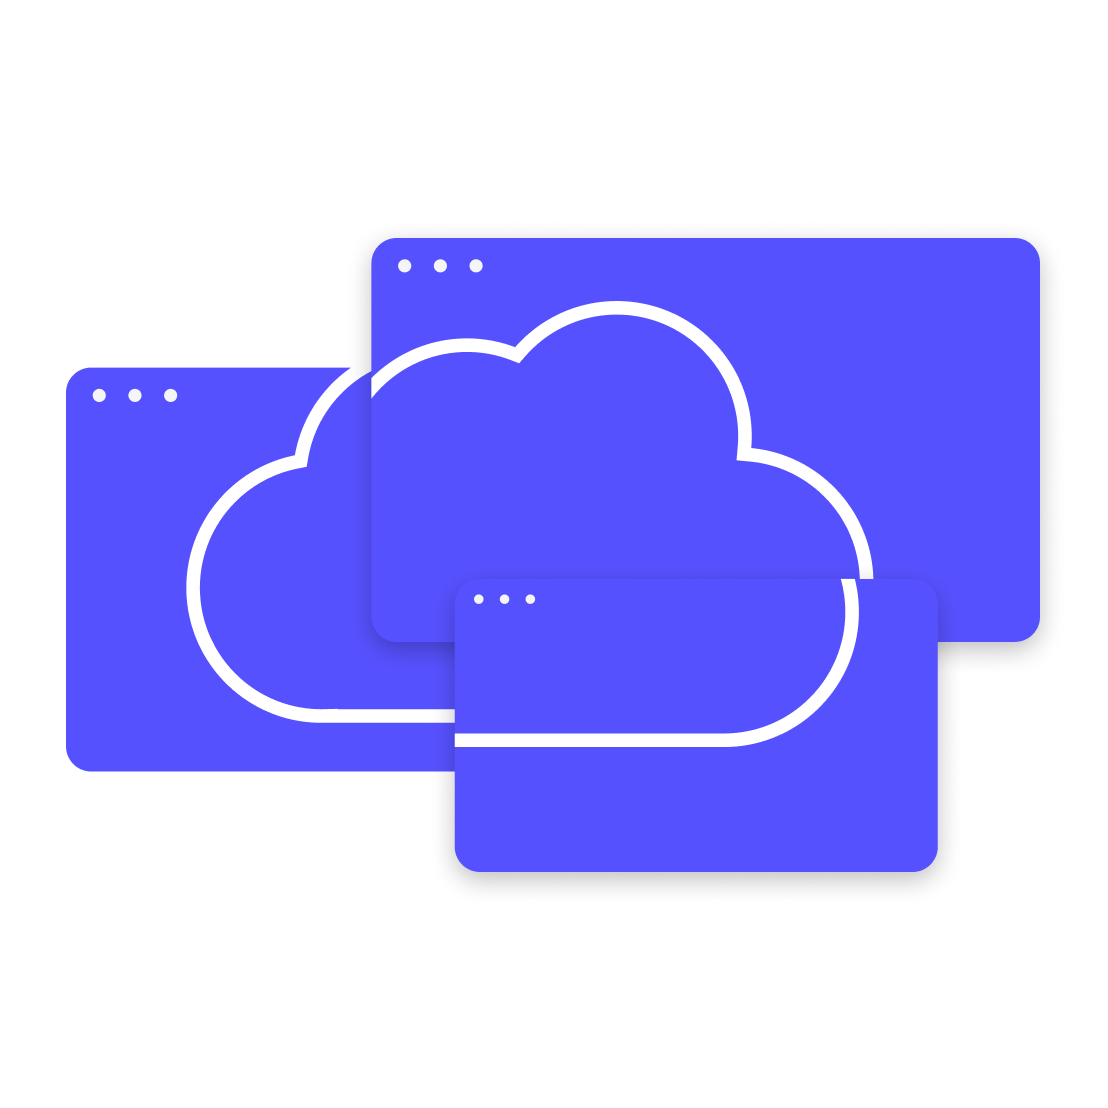 all-the-benefits-of-the-cloud-ui-design